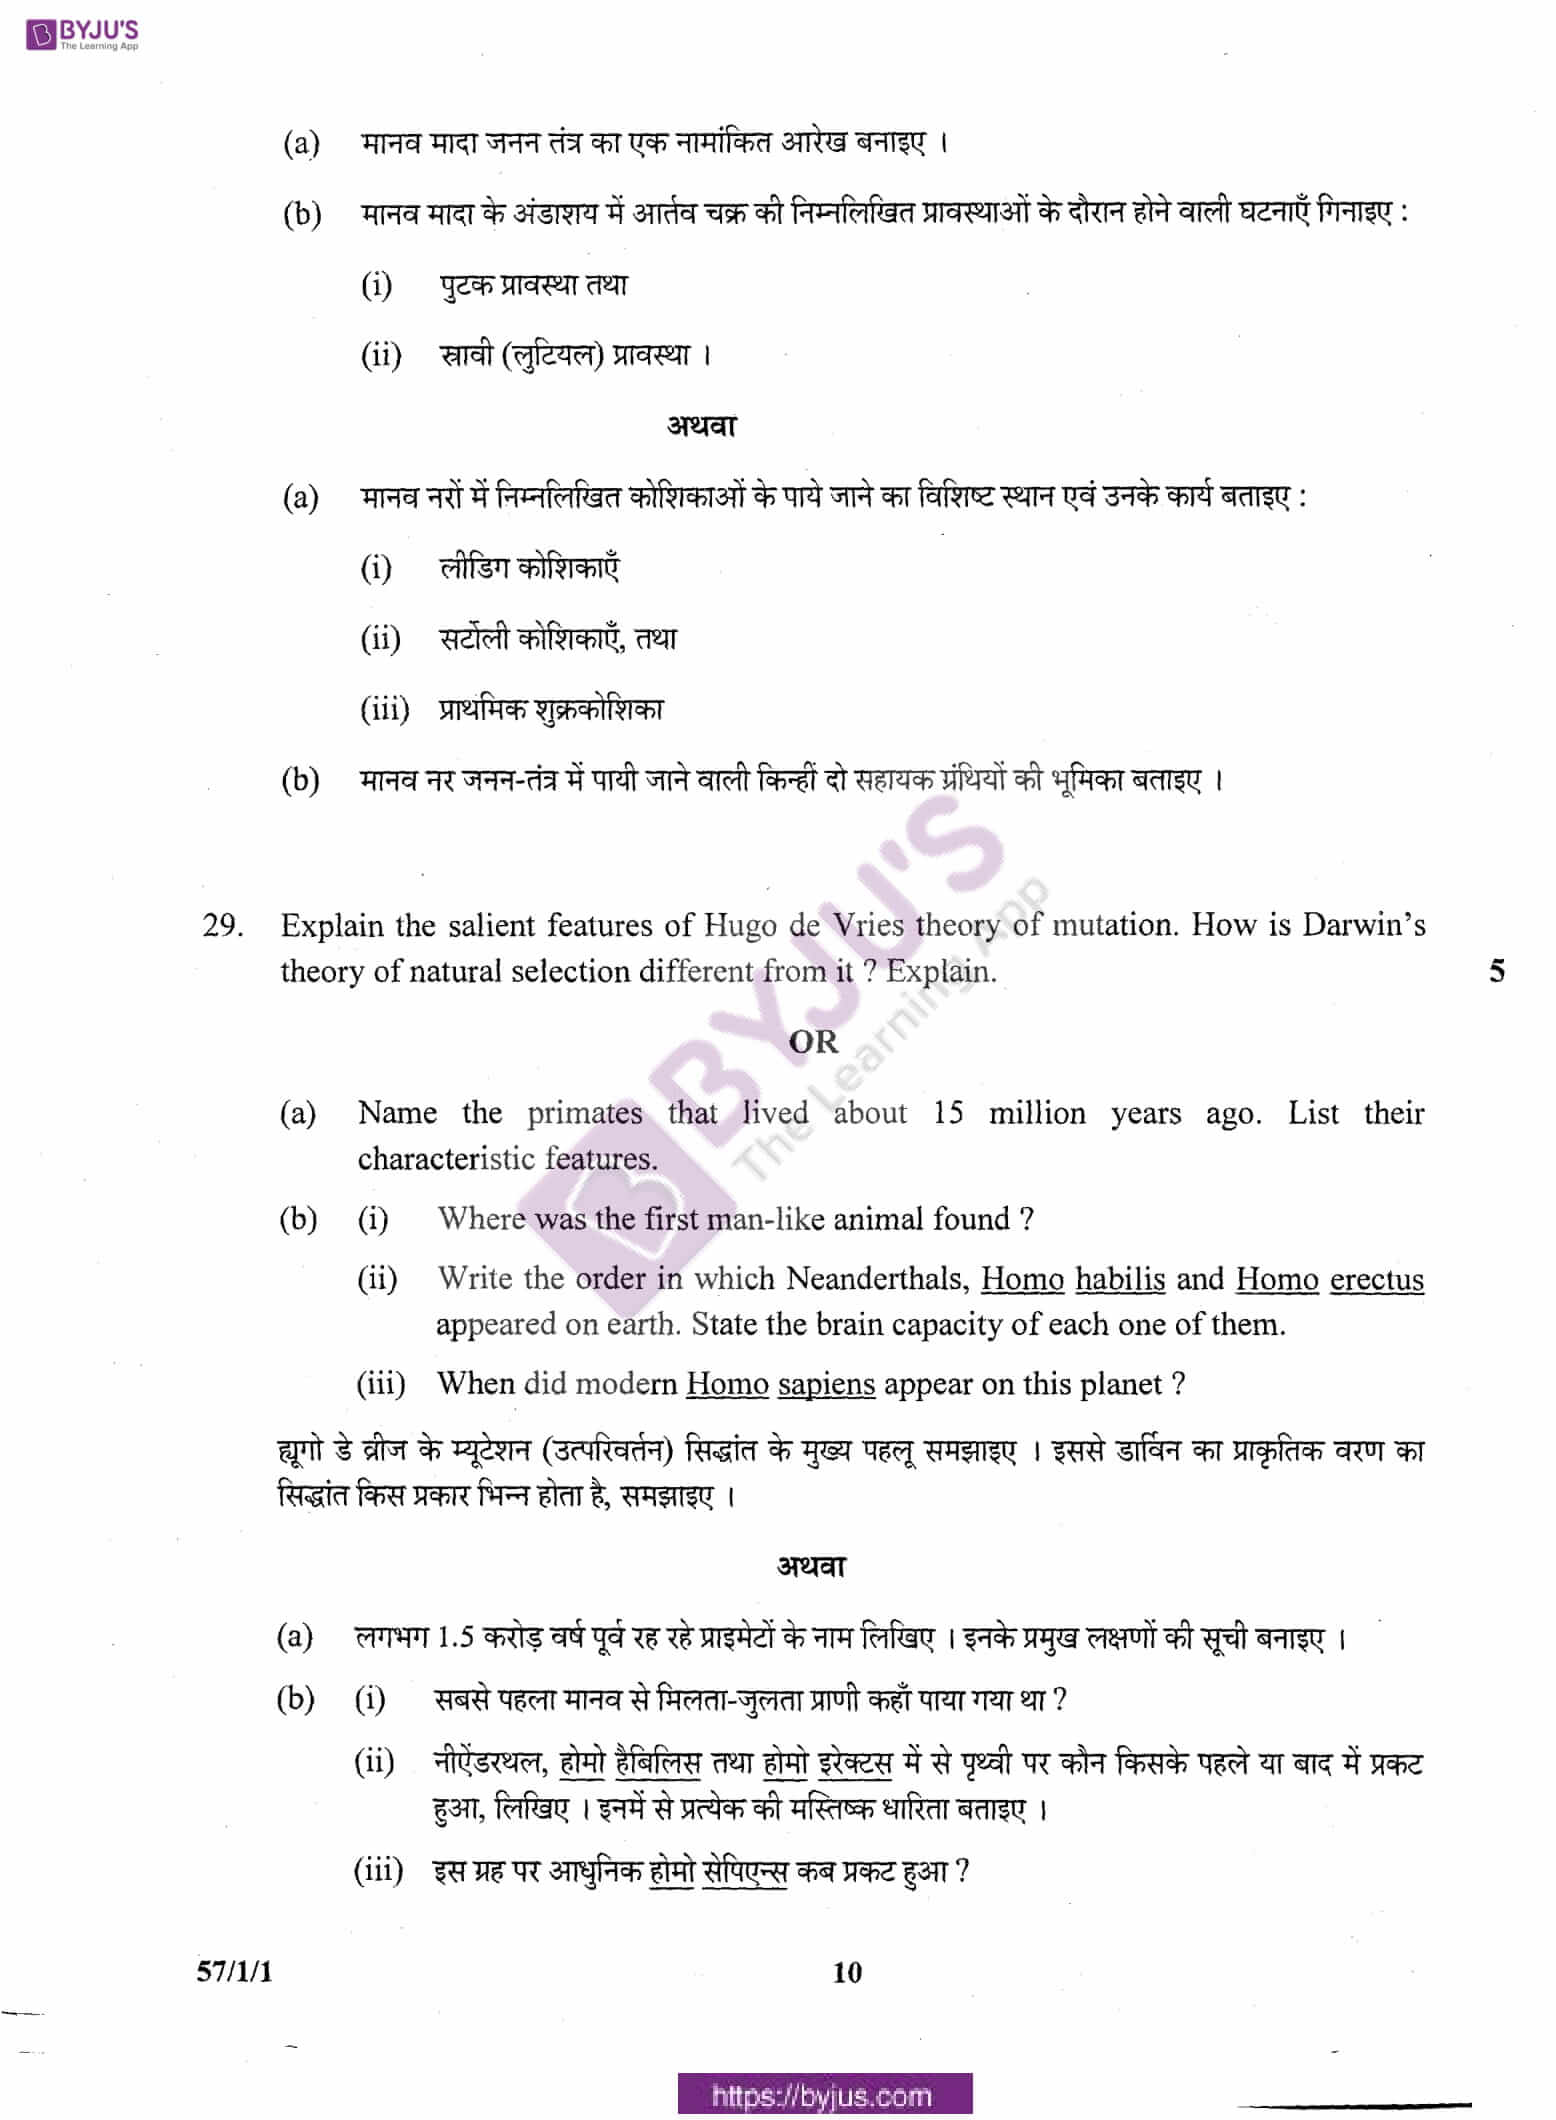 cbse class 12 biology question paper 2011 set 1